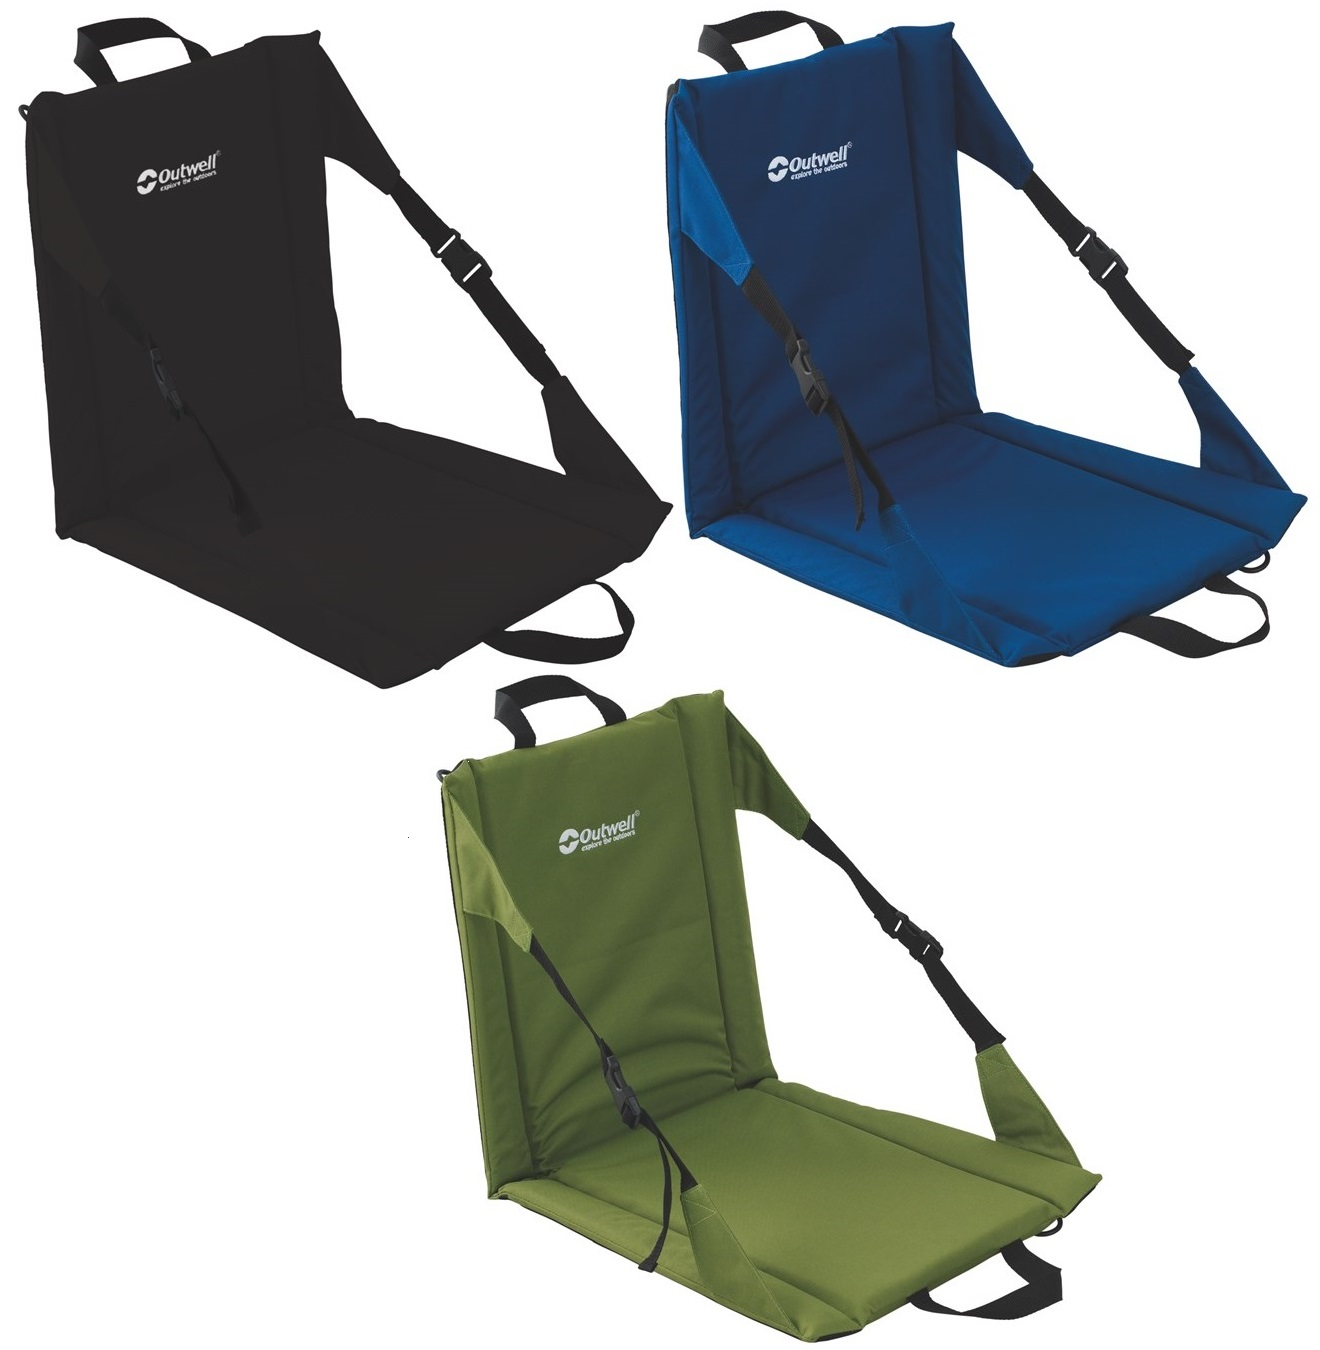 Outwell Folding Beach Chair Furniture Outdoor Value